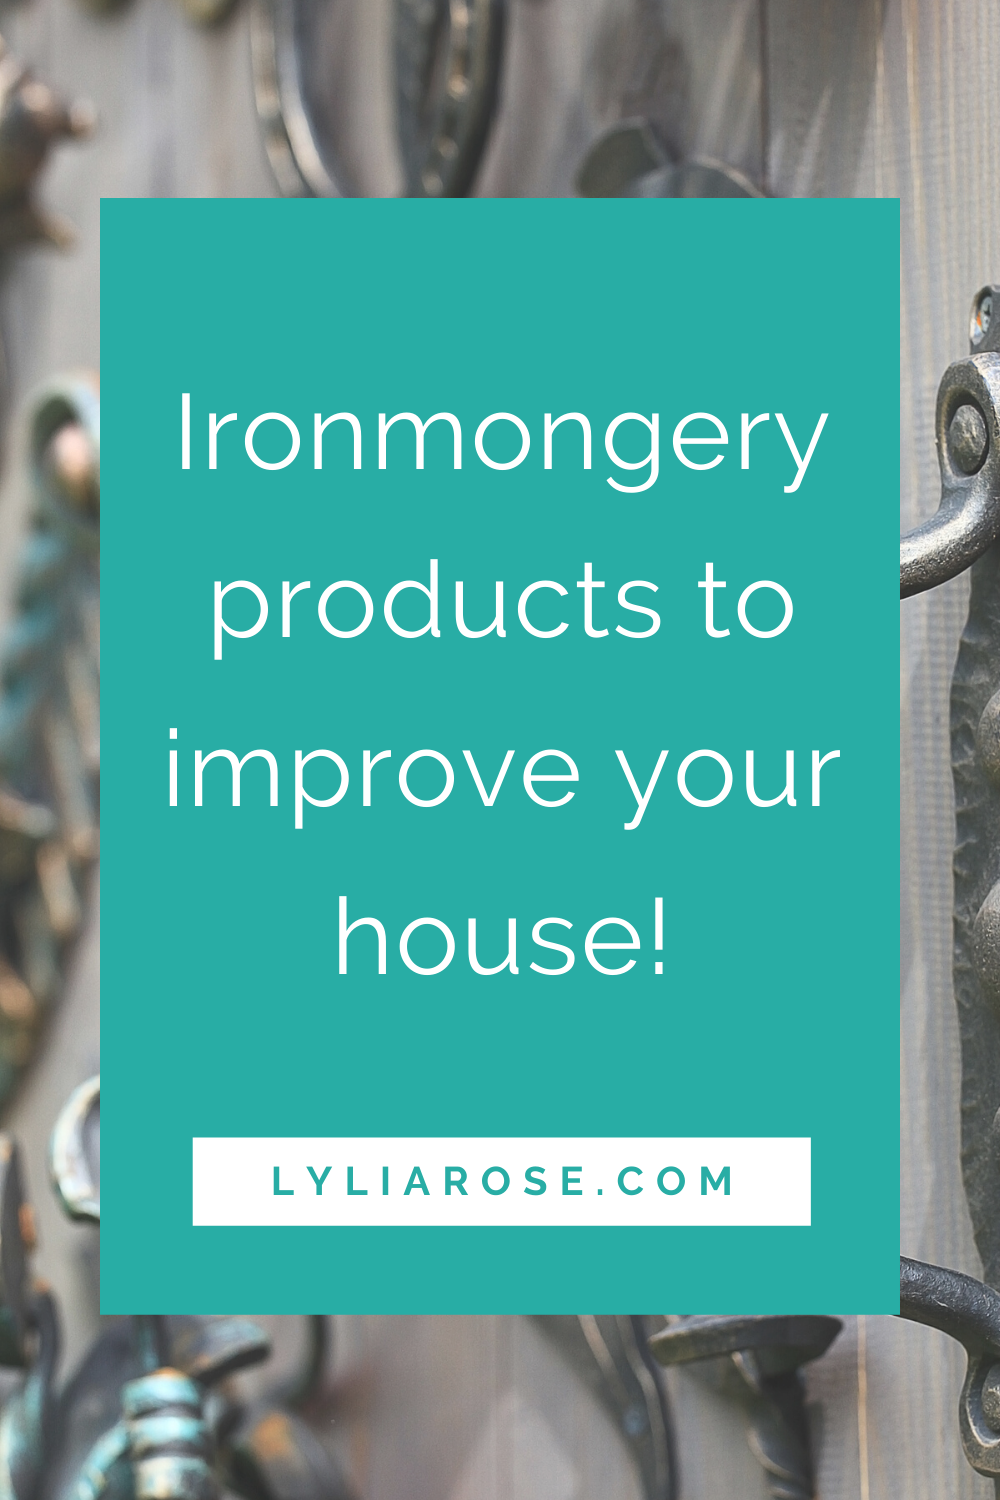 Ironmongery products to improve your house during lockdown